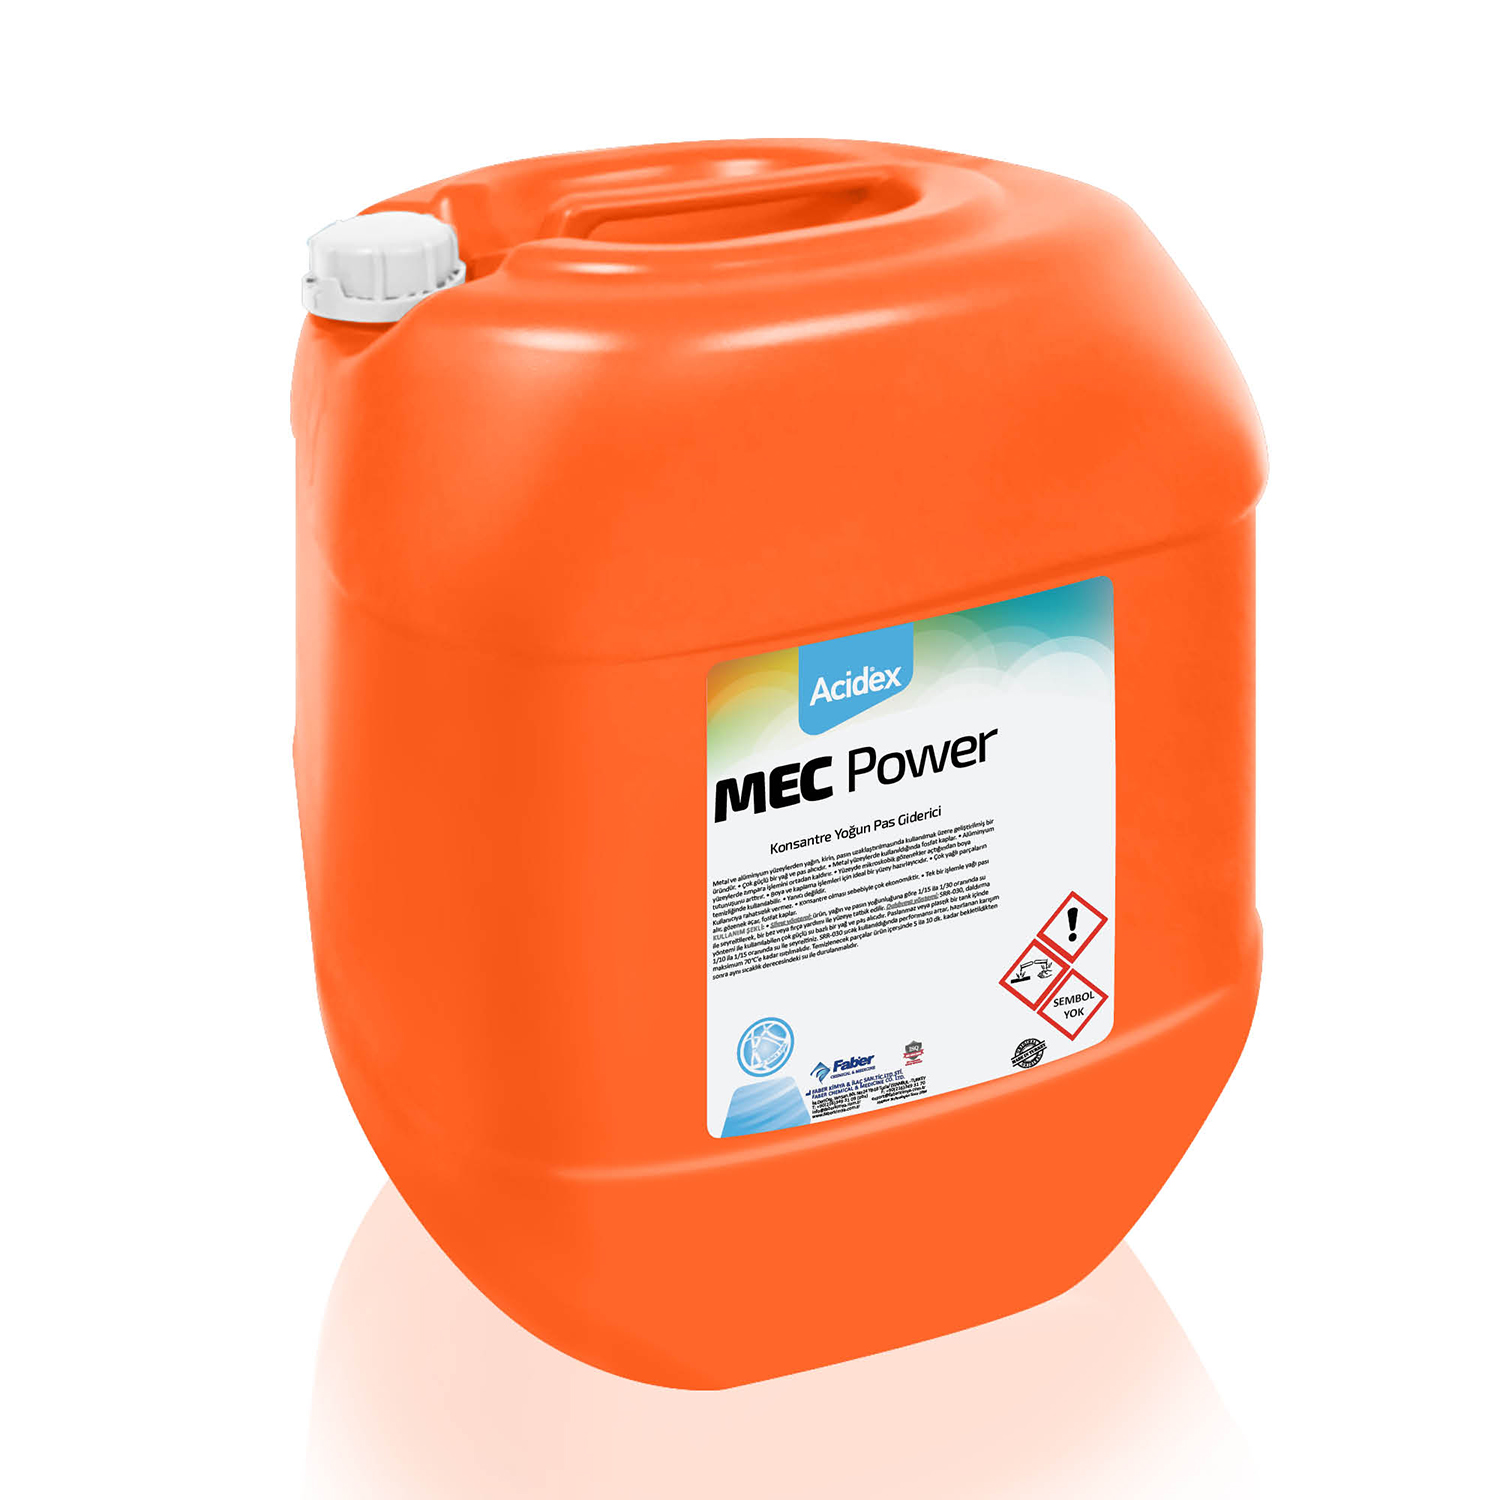 Acidex MEC Power